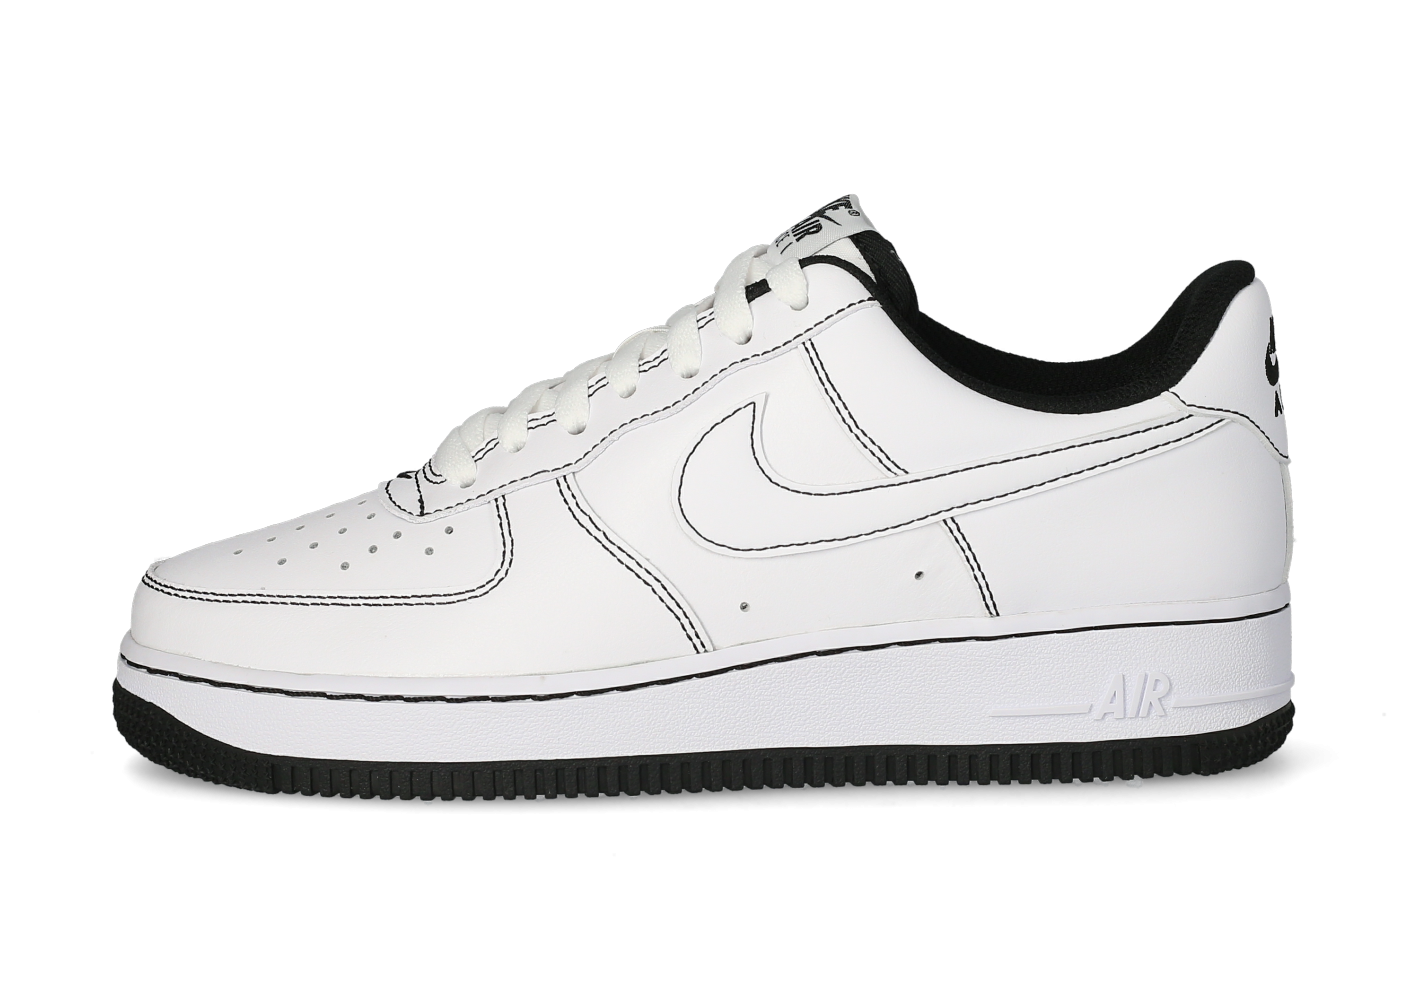 Nike Air Force 1 '07 Low Contrast Stitch - Chaussures Baskets ...